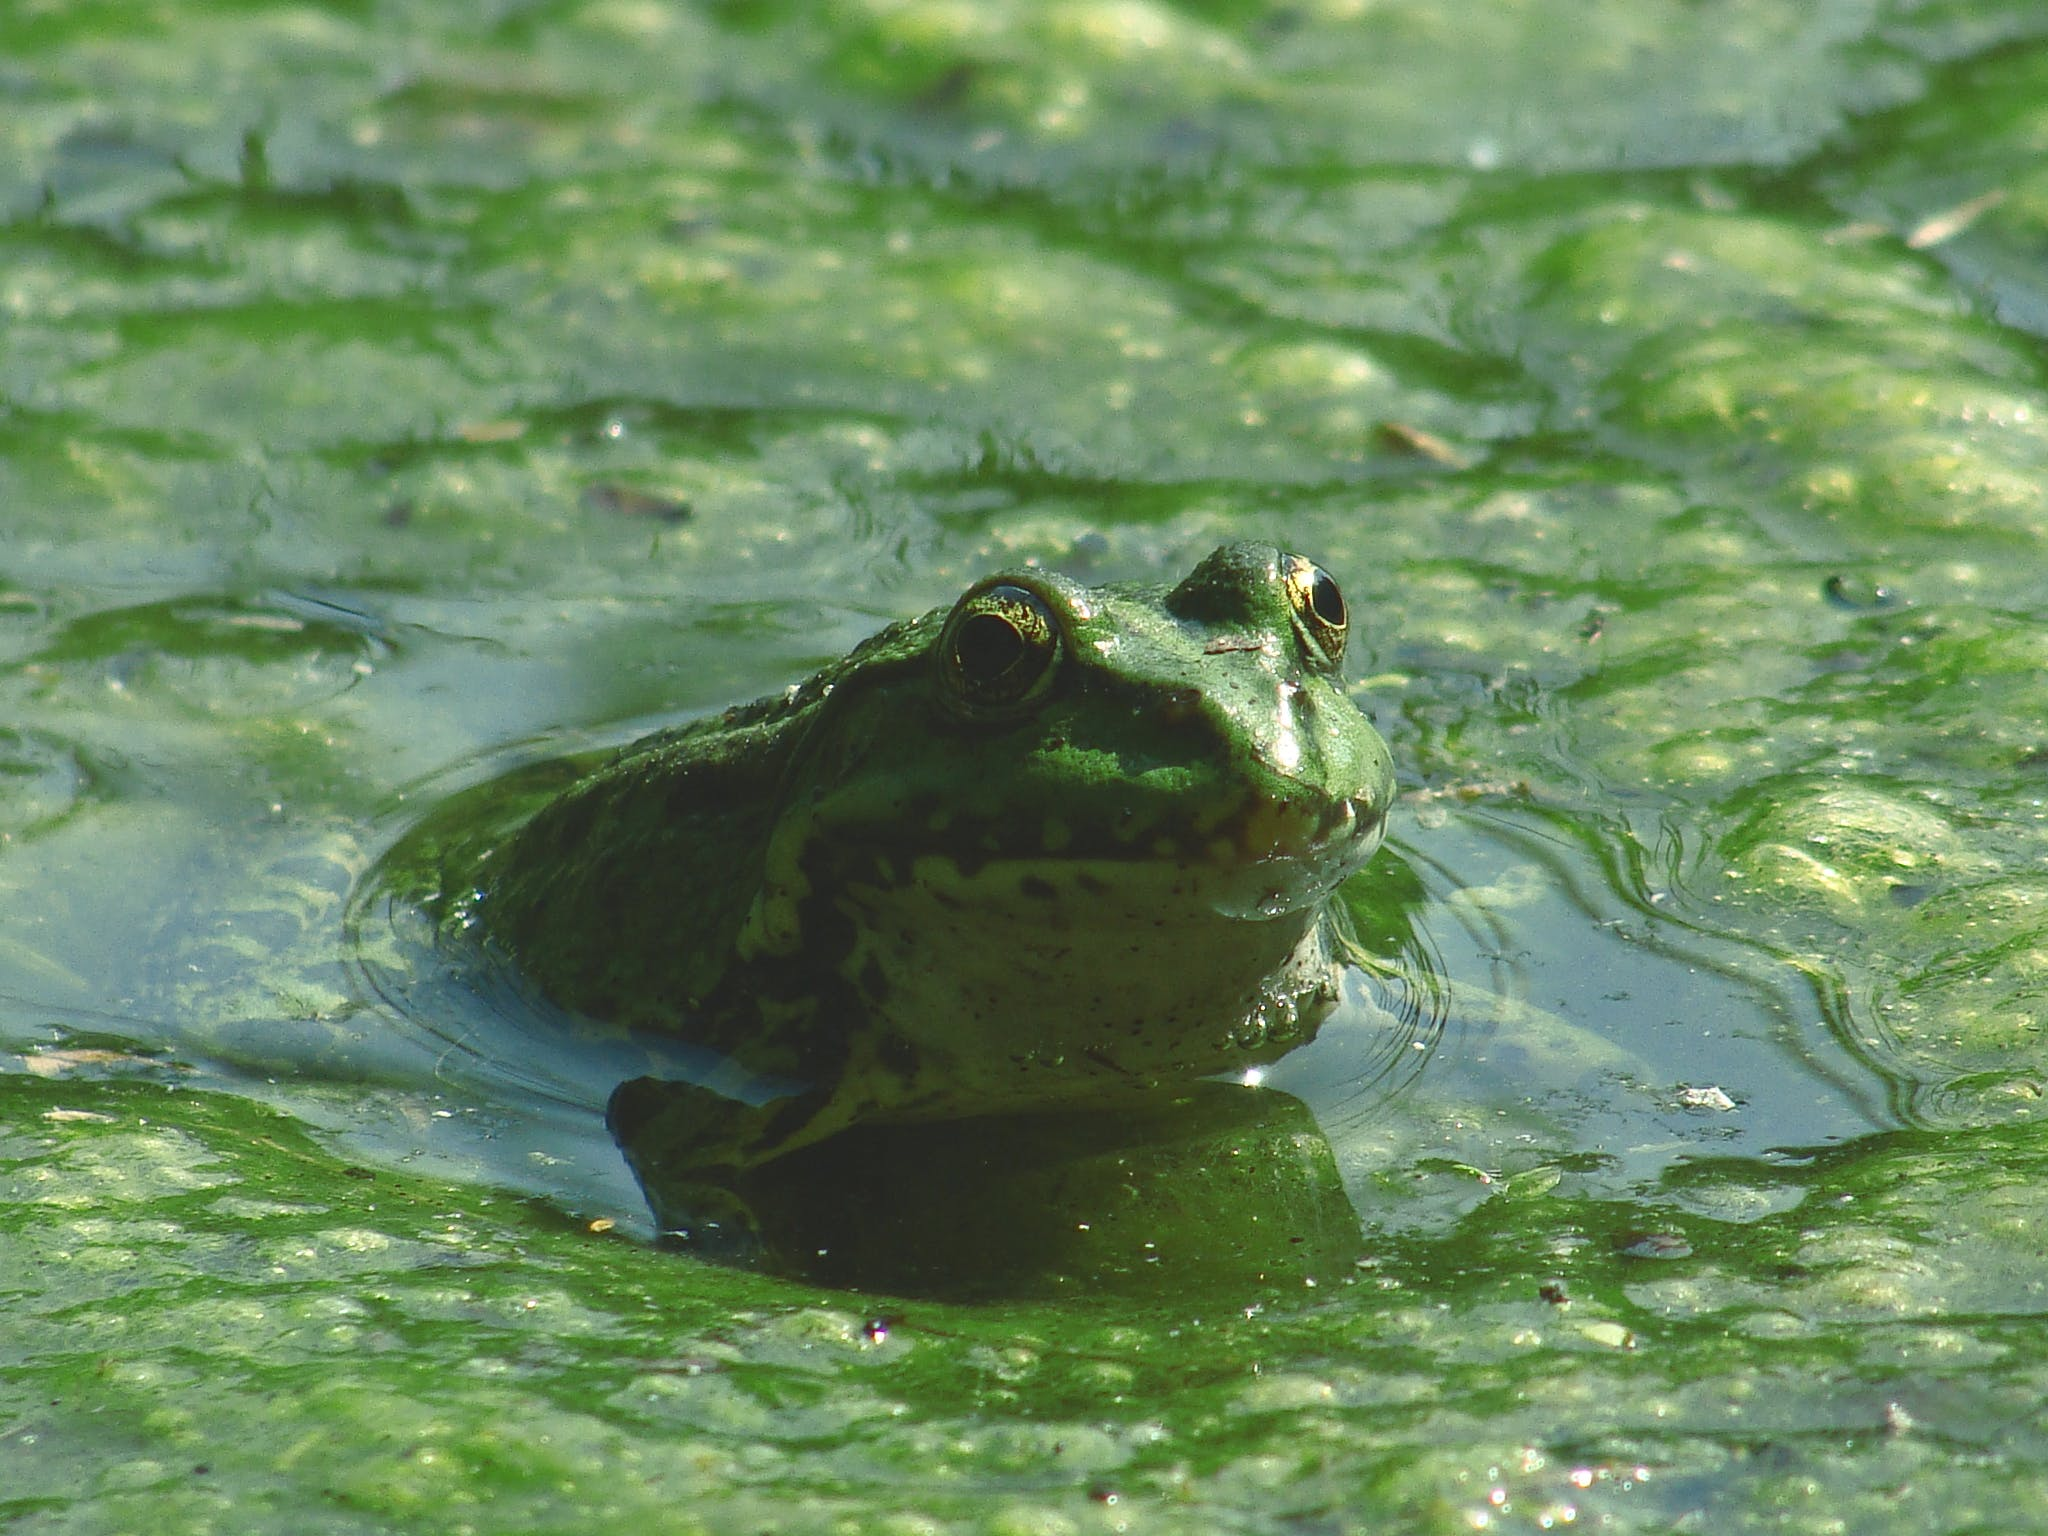 Frog on Body of Water during Daytime